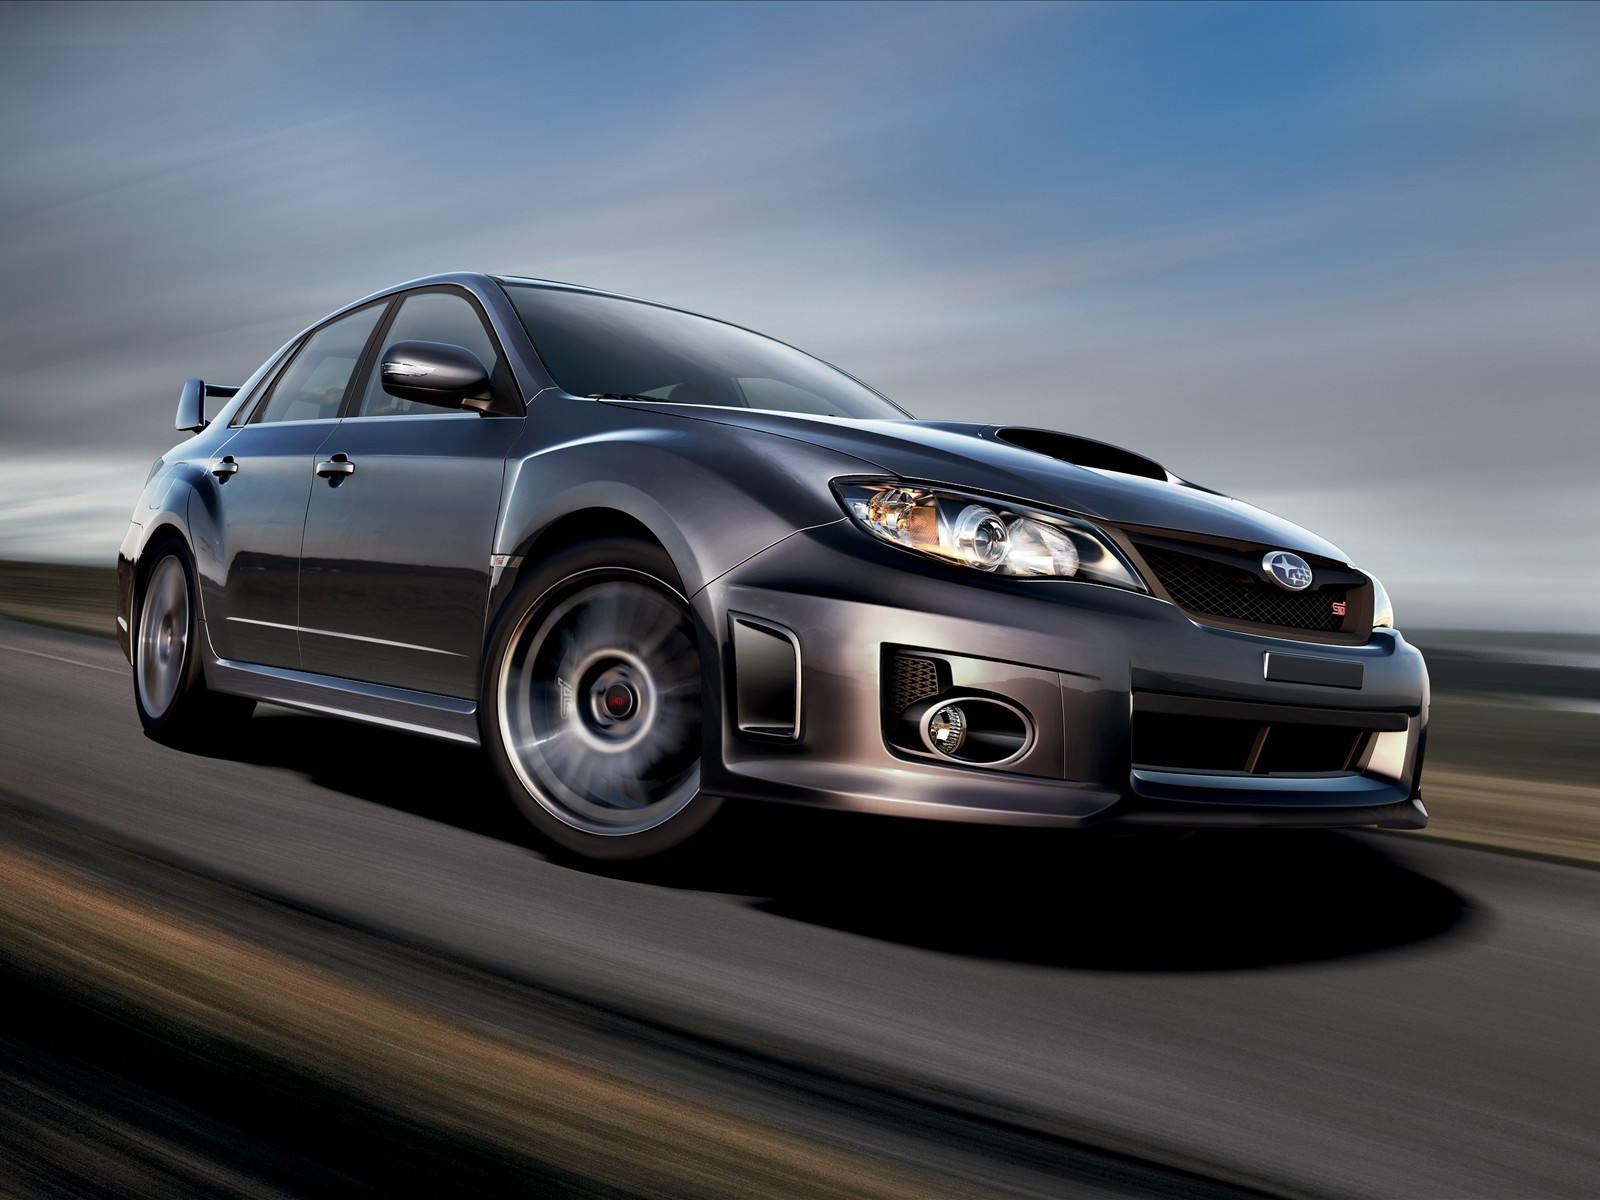 subaru impreza JDM Japanese HD Wallpaper